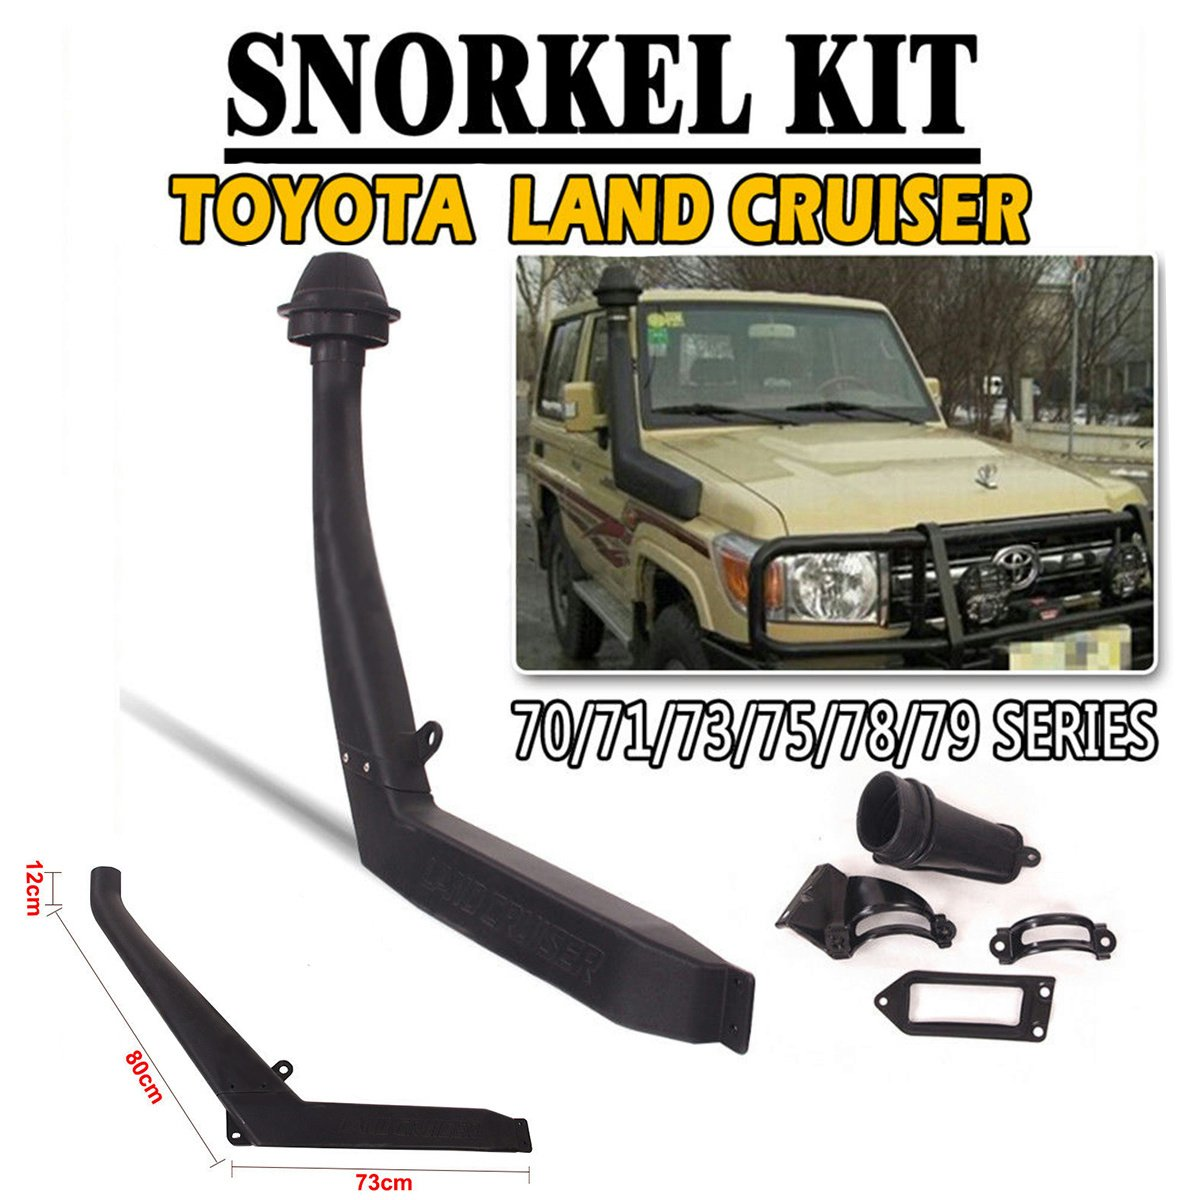 For Toyota Land Cruiser Air Snorkel Kit Off Road 70 71 1973 Original 73 75 78 79 Series 85 07 Automotive